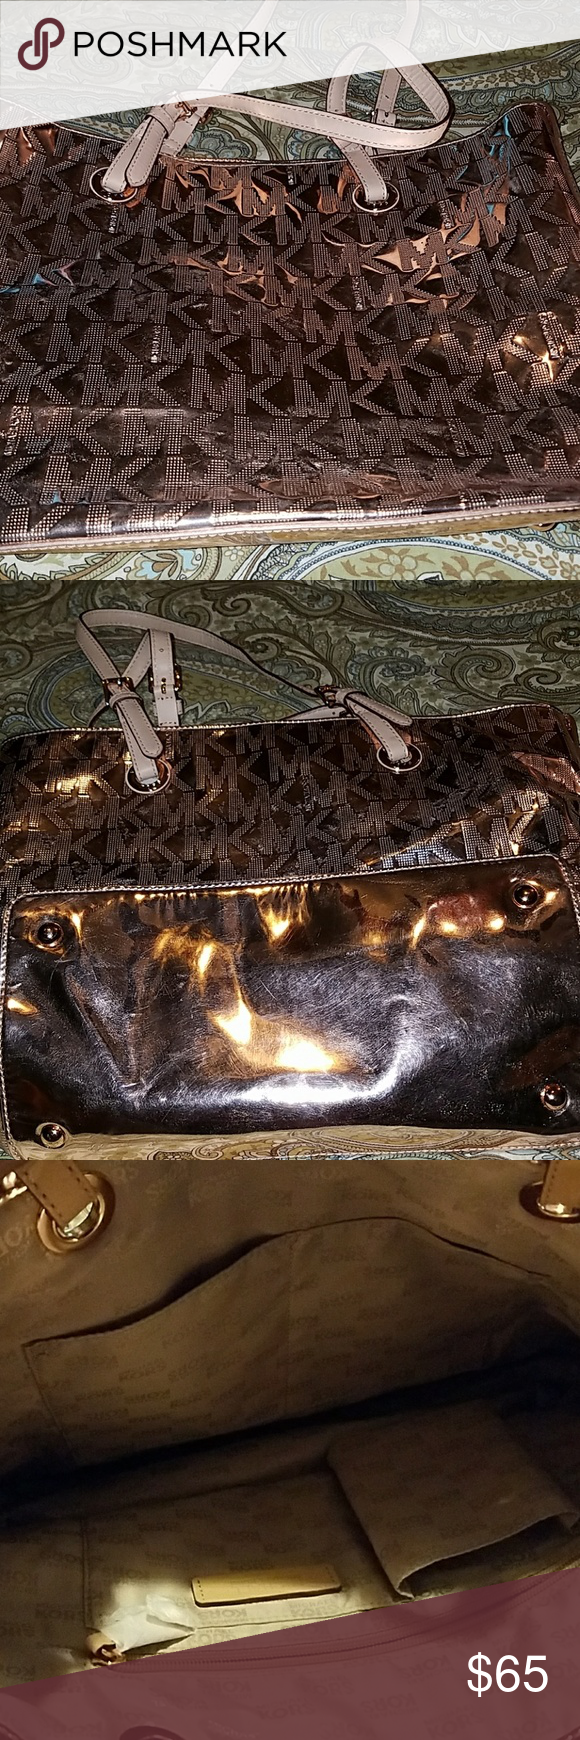 """Michael Kors Bag Pink Michael Kors bag with inside zip pocket and four separate pockets to store your cell phone, wallet, etc. 16"""" length and 10"""" in height. 7"""" strap drop. Good condition. Very minor wear. Michael Kors Bags Shoulder Bags"""